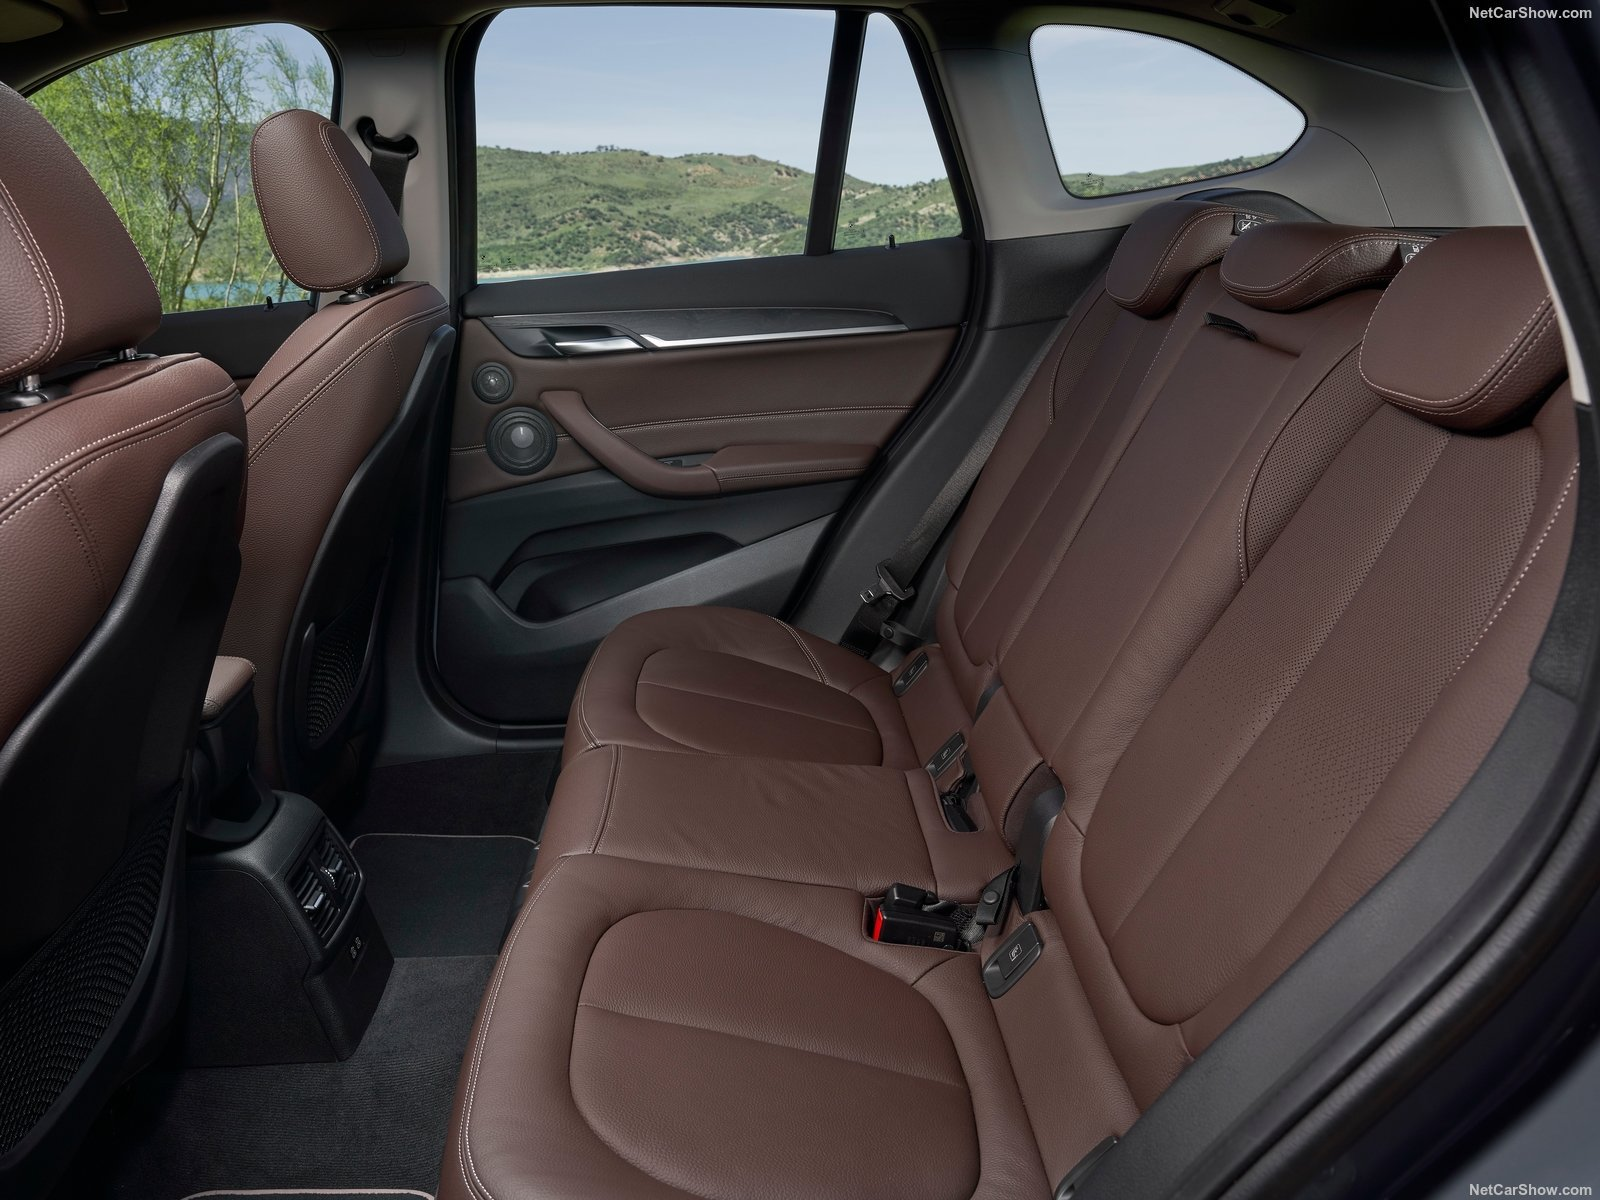 BMw x1 Rearseats